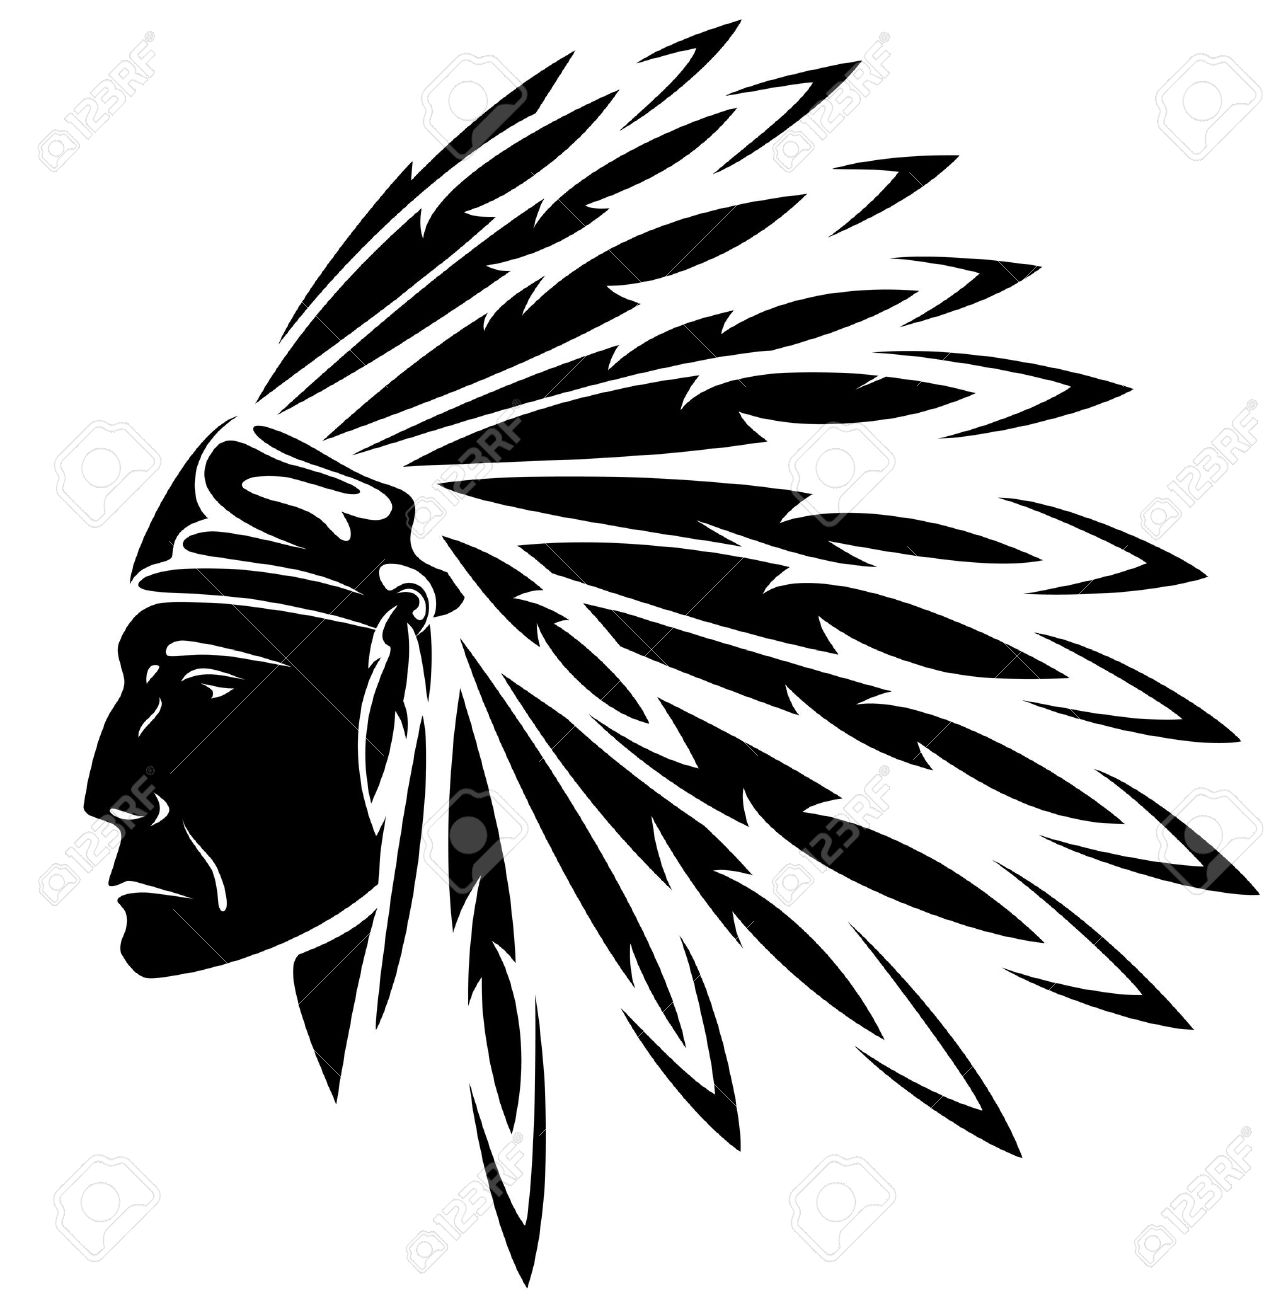 red indian chief black and white illustration.